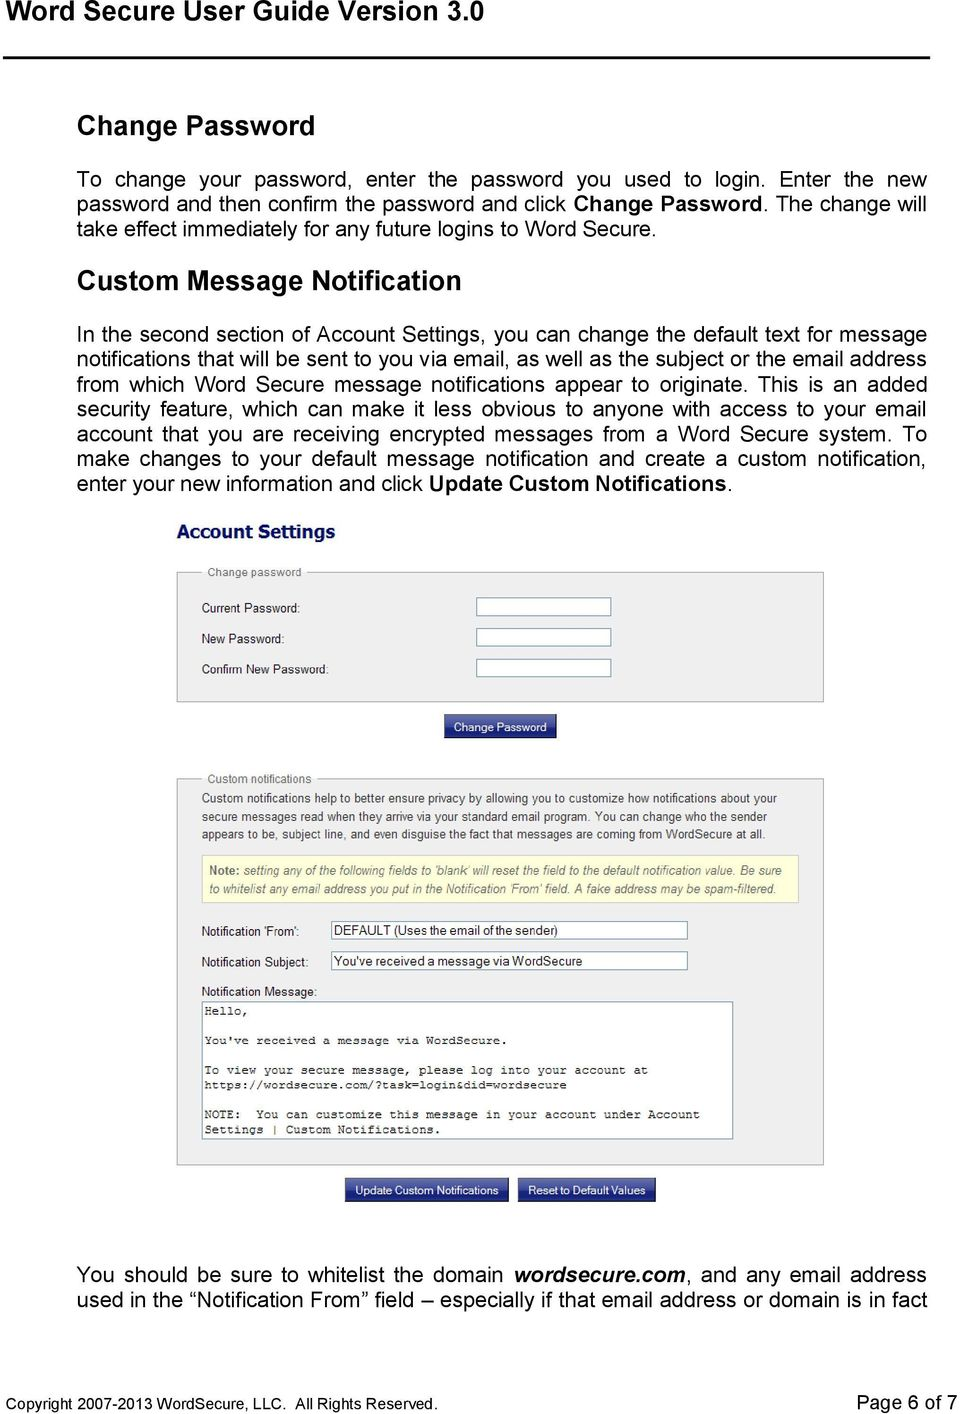 Custom Message Notification In the second section of Account Settings, you can change the default text for message notifications that will be sent to you via email, as well as the subject or the